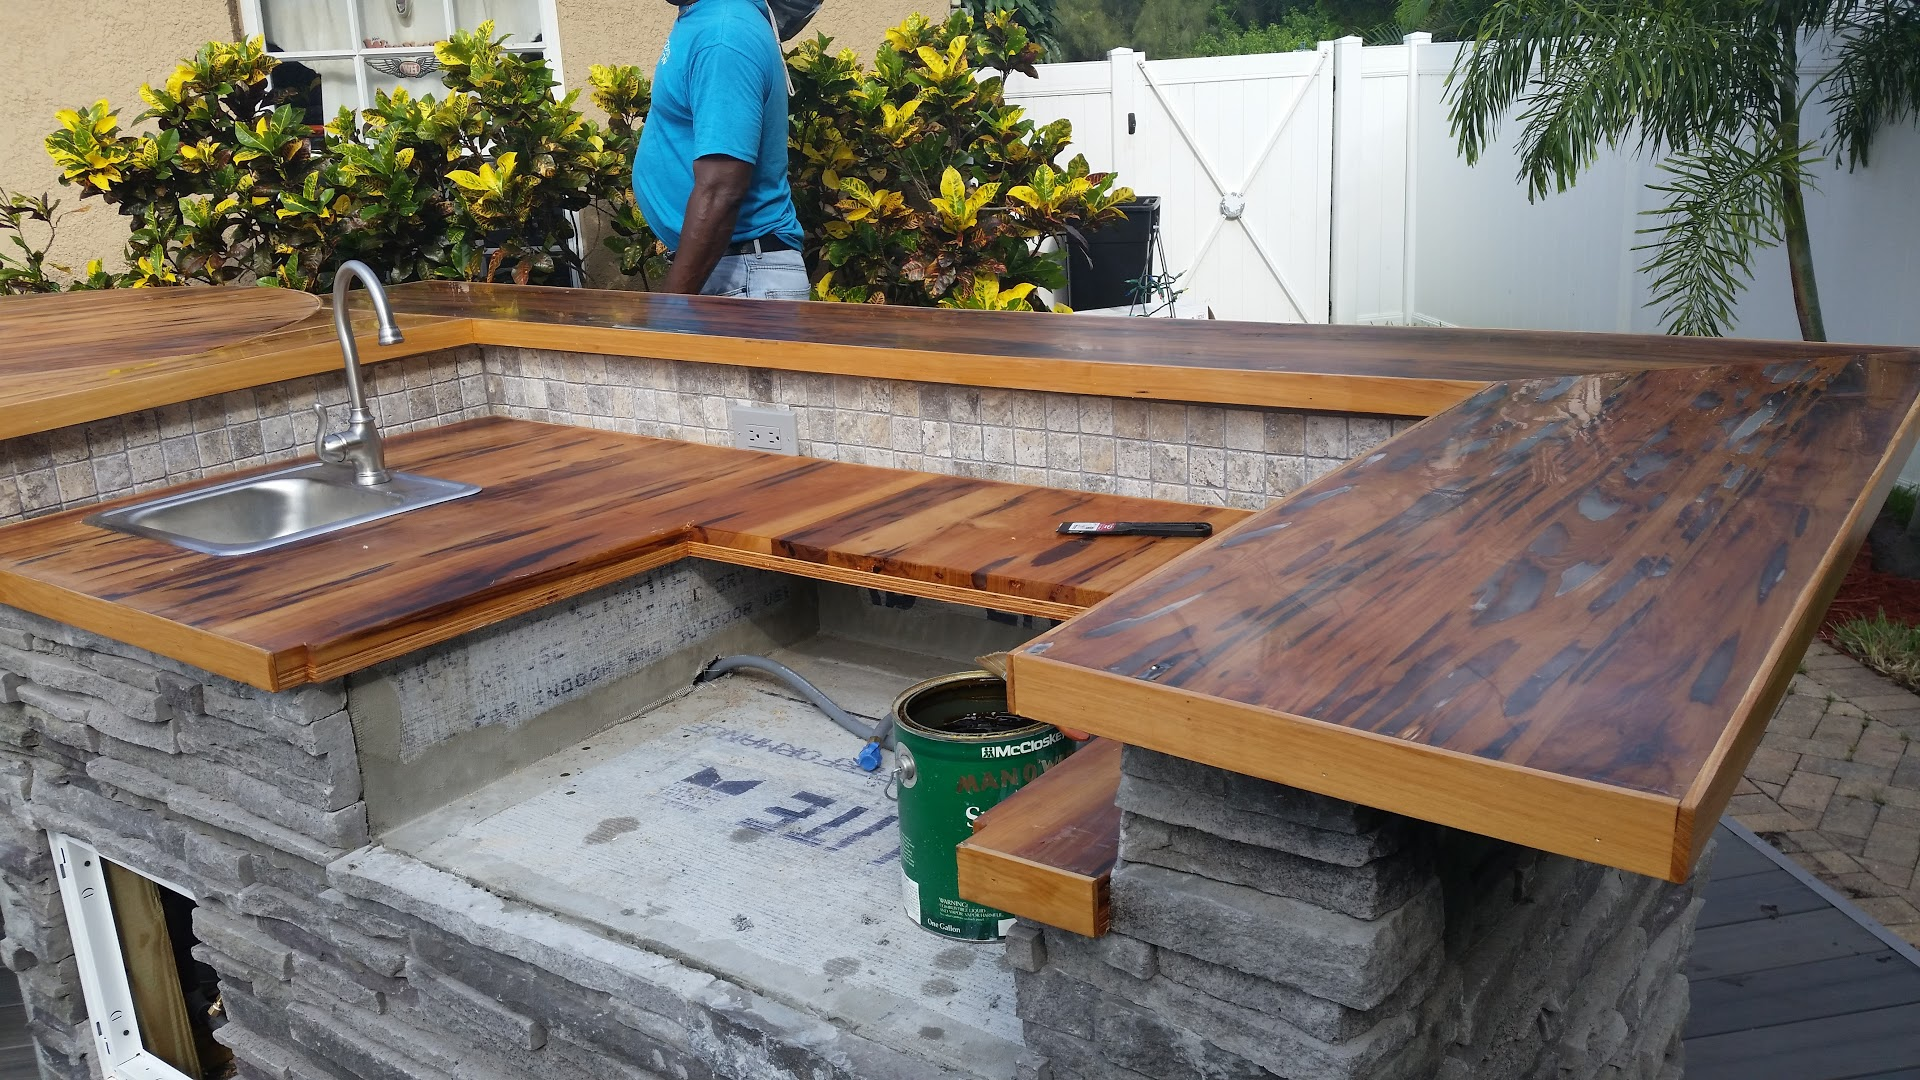 How To Waterproof Wood Countertops Anderson Lumber Company St Petersburg Florida Since 1908